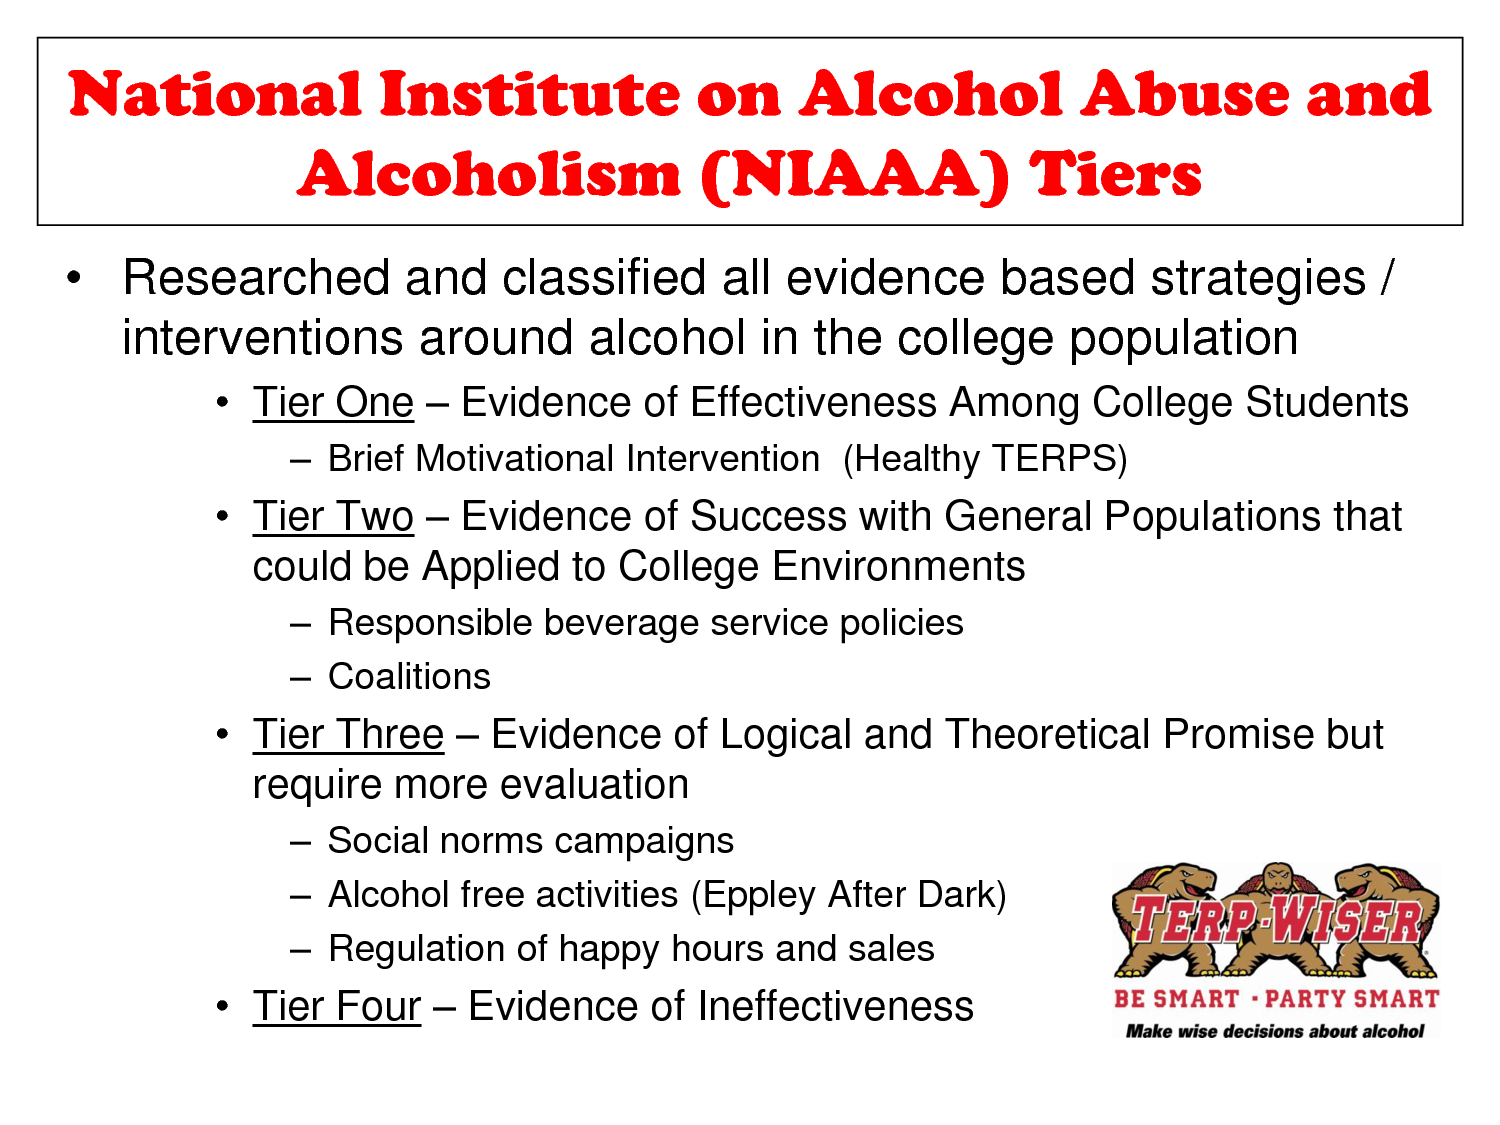 alcoholism and alcohol abuse The signs and symptoms of alcohol use, as well as the short- and long-term effects of alcohol abuse don't always occur in isolation in fact, an alarming number of people purposely combine their alcohol with drugs 7 this is frequently done with the intention of compounding the effects of both to achieve a greater state of intoxication.